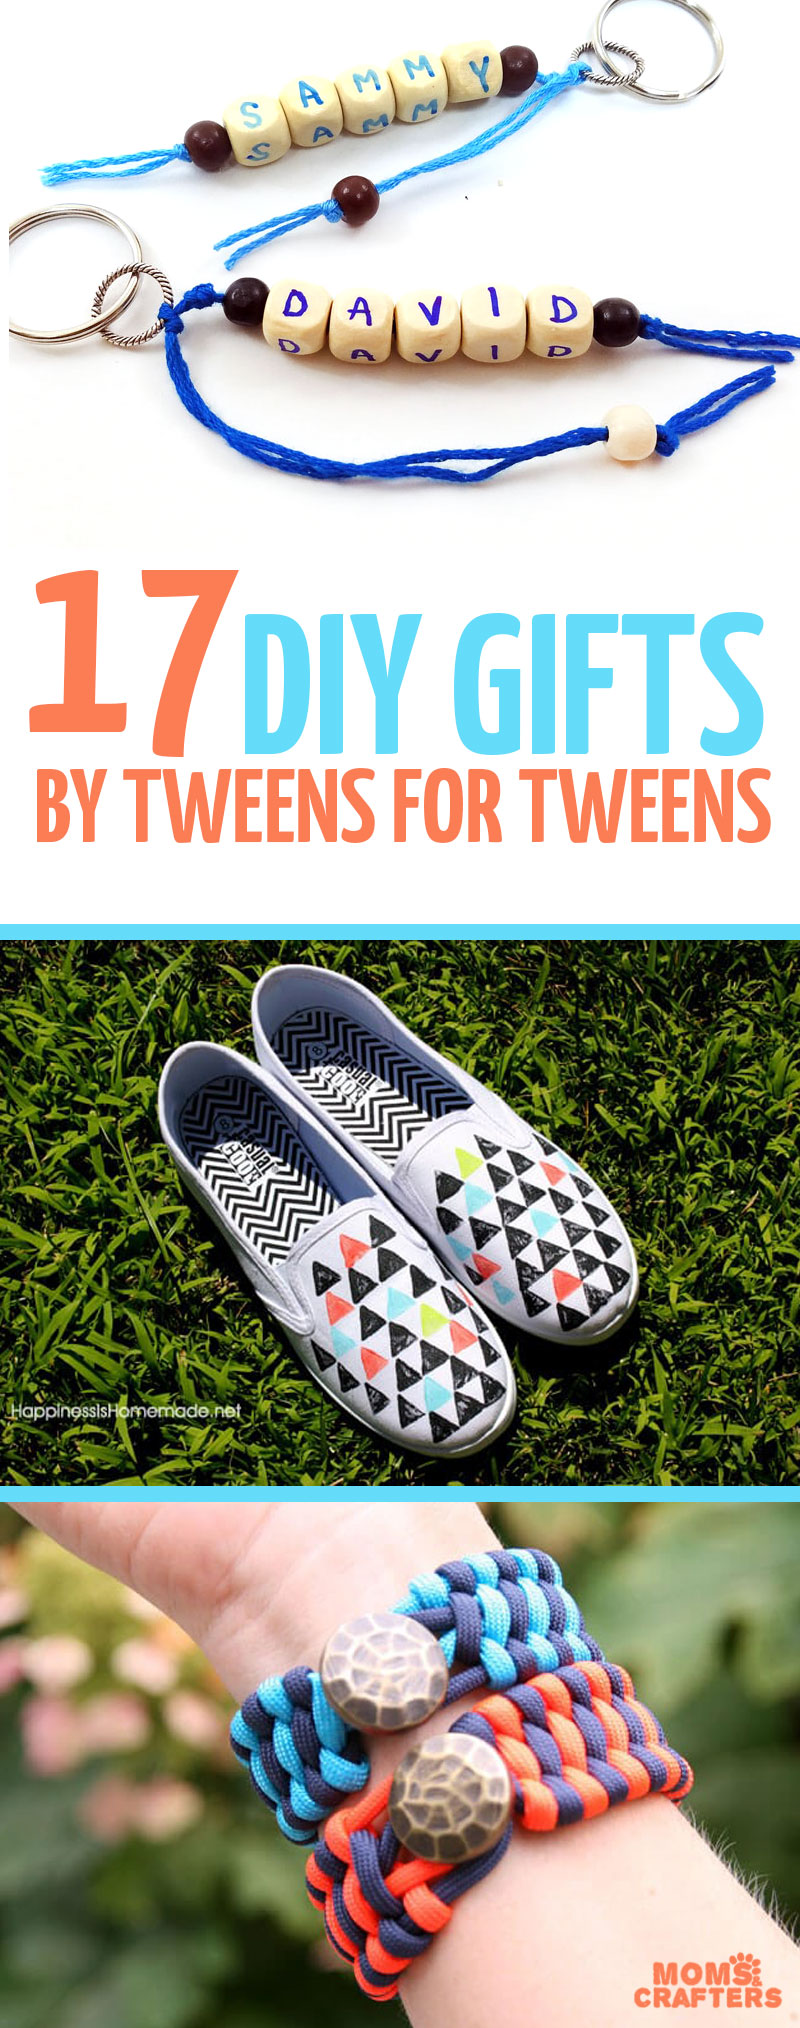 Click for 17 cool DIY gifts for tweens to make for other tweens!! These sweet DIY gift ideas for teens and tweens are easy to craft and perfect for Christmas and birthdays. #diygifts #teencrafts #teens